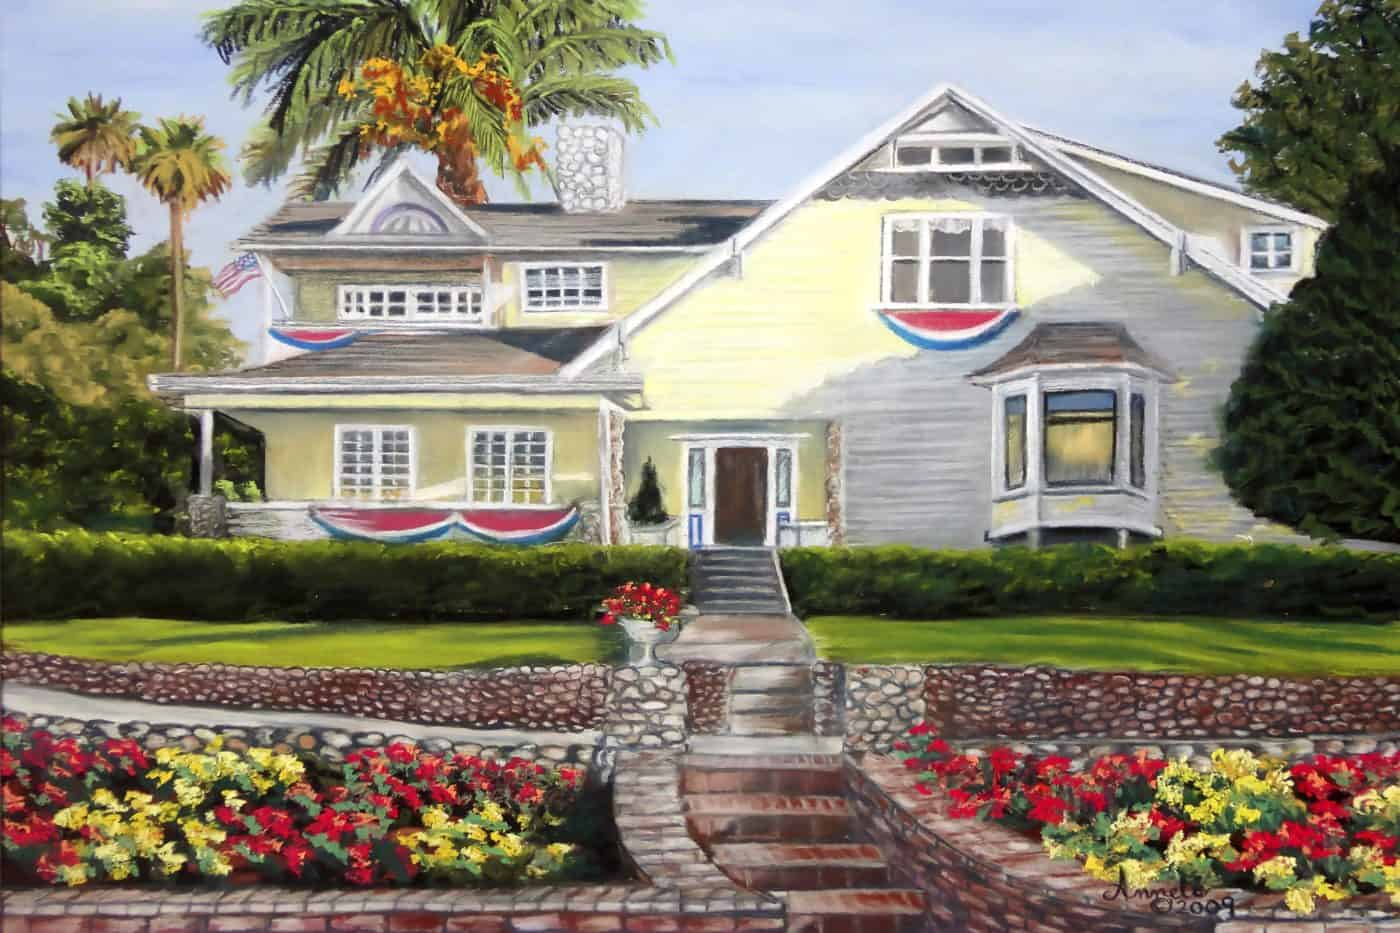 Drawing of a yellow house with flowers